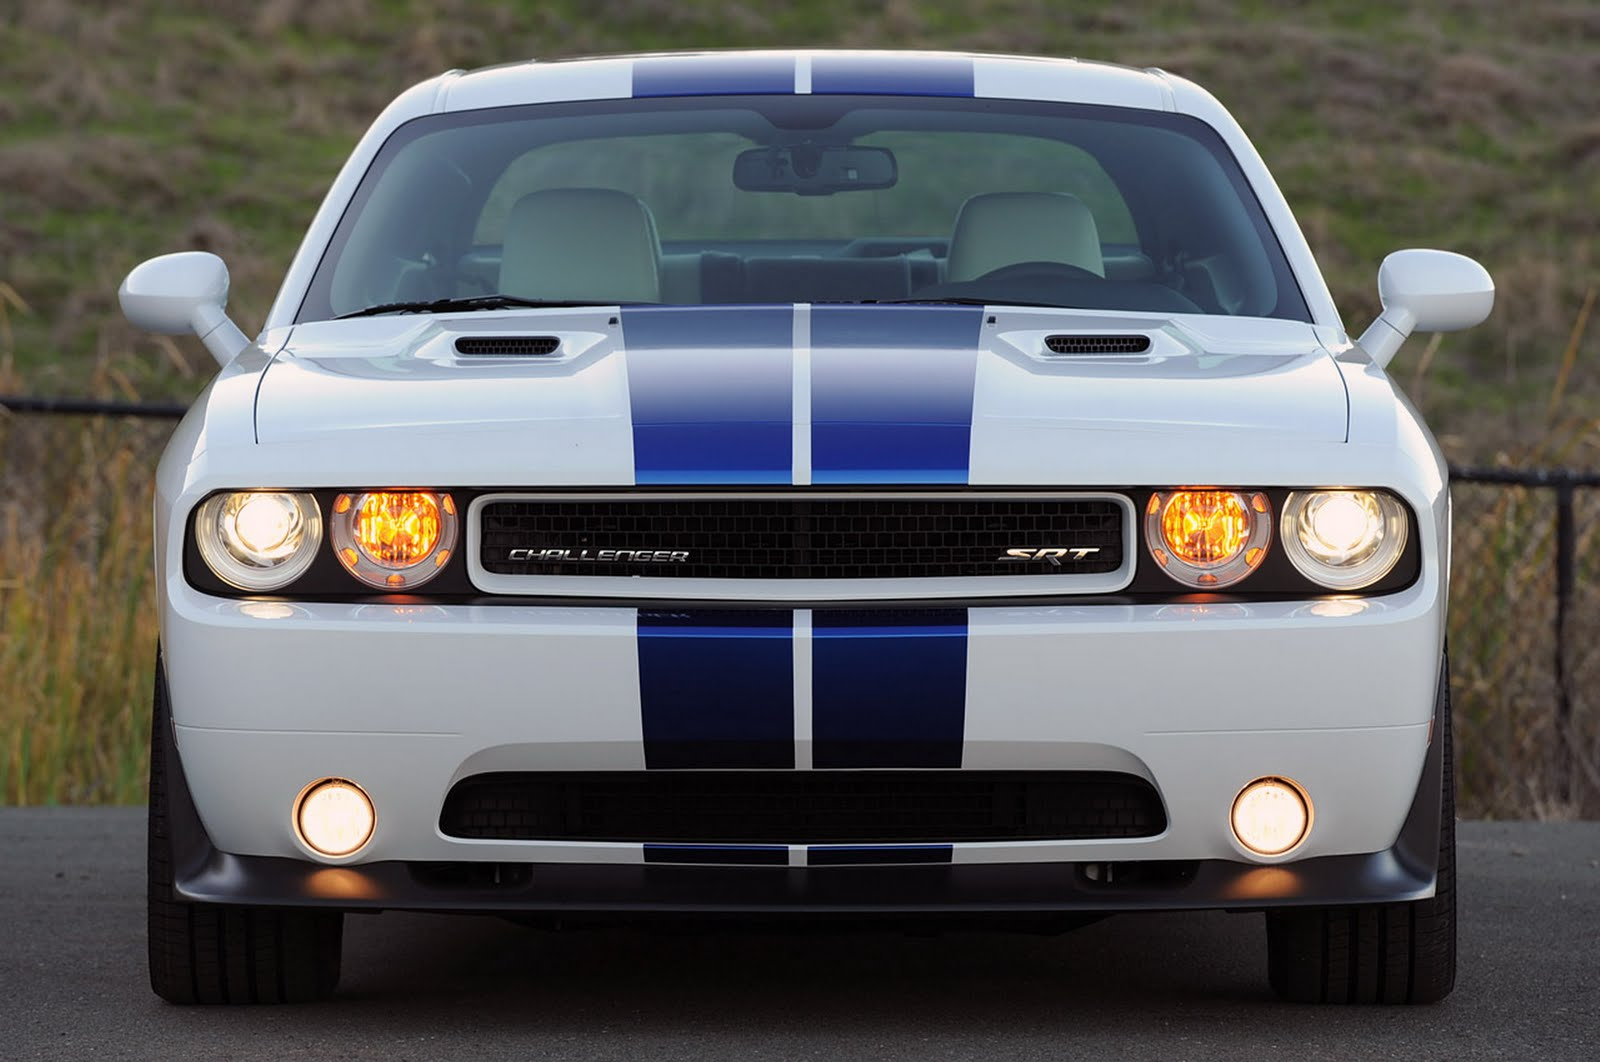 2011 dodge challenger srt8 392 car review with pictures. Black Bedroom Furniture Sets. Home Design Ideas